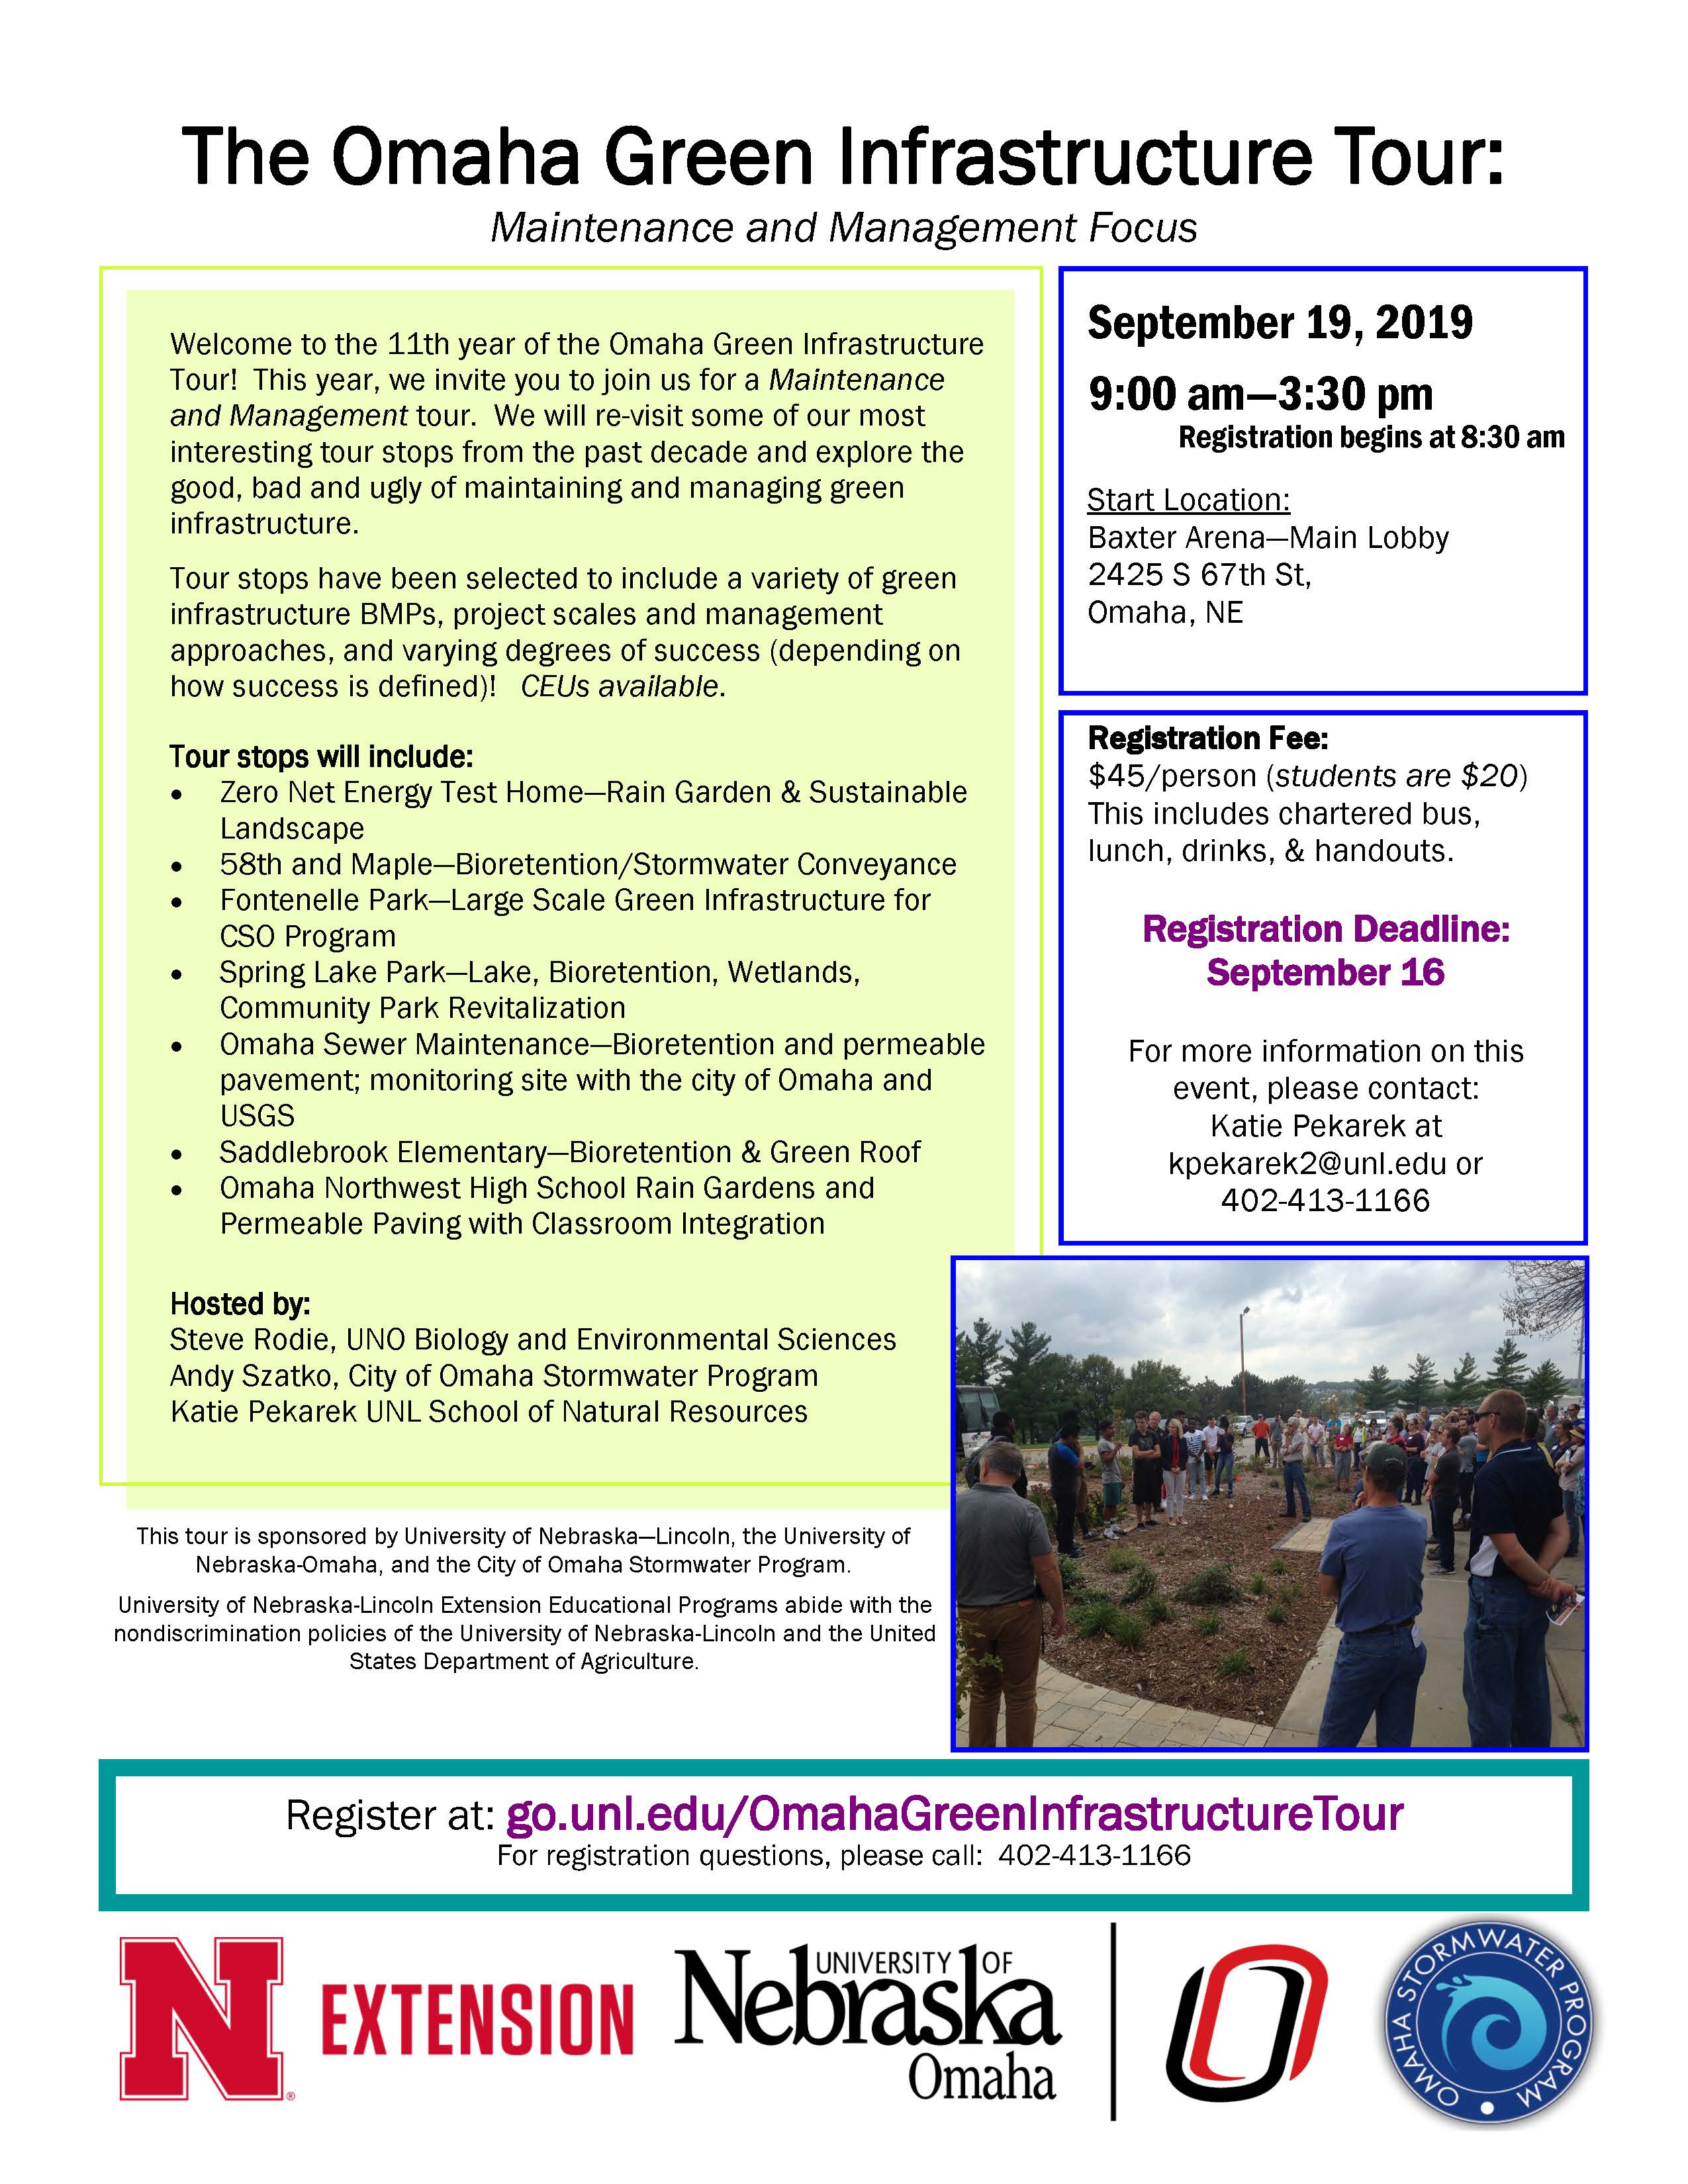 Omaha Green Infrastructure Tour flyer